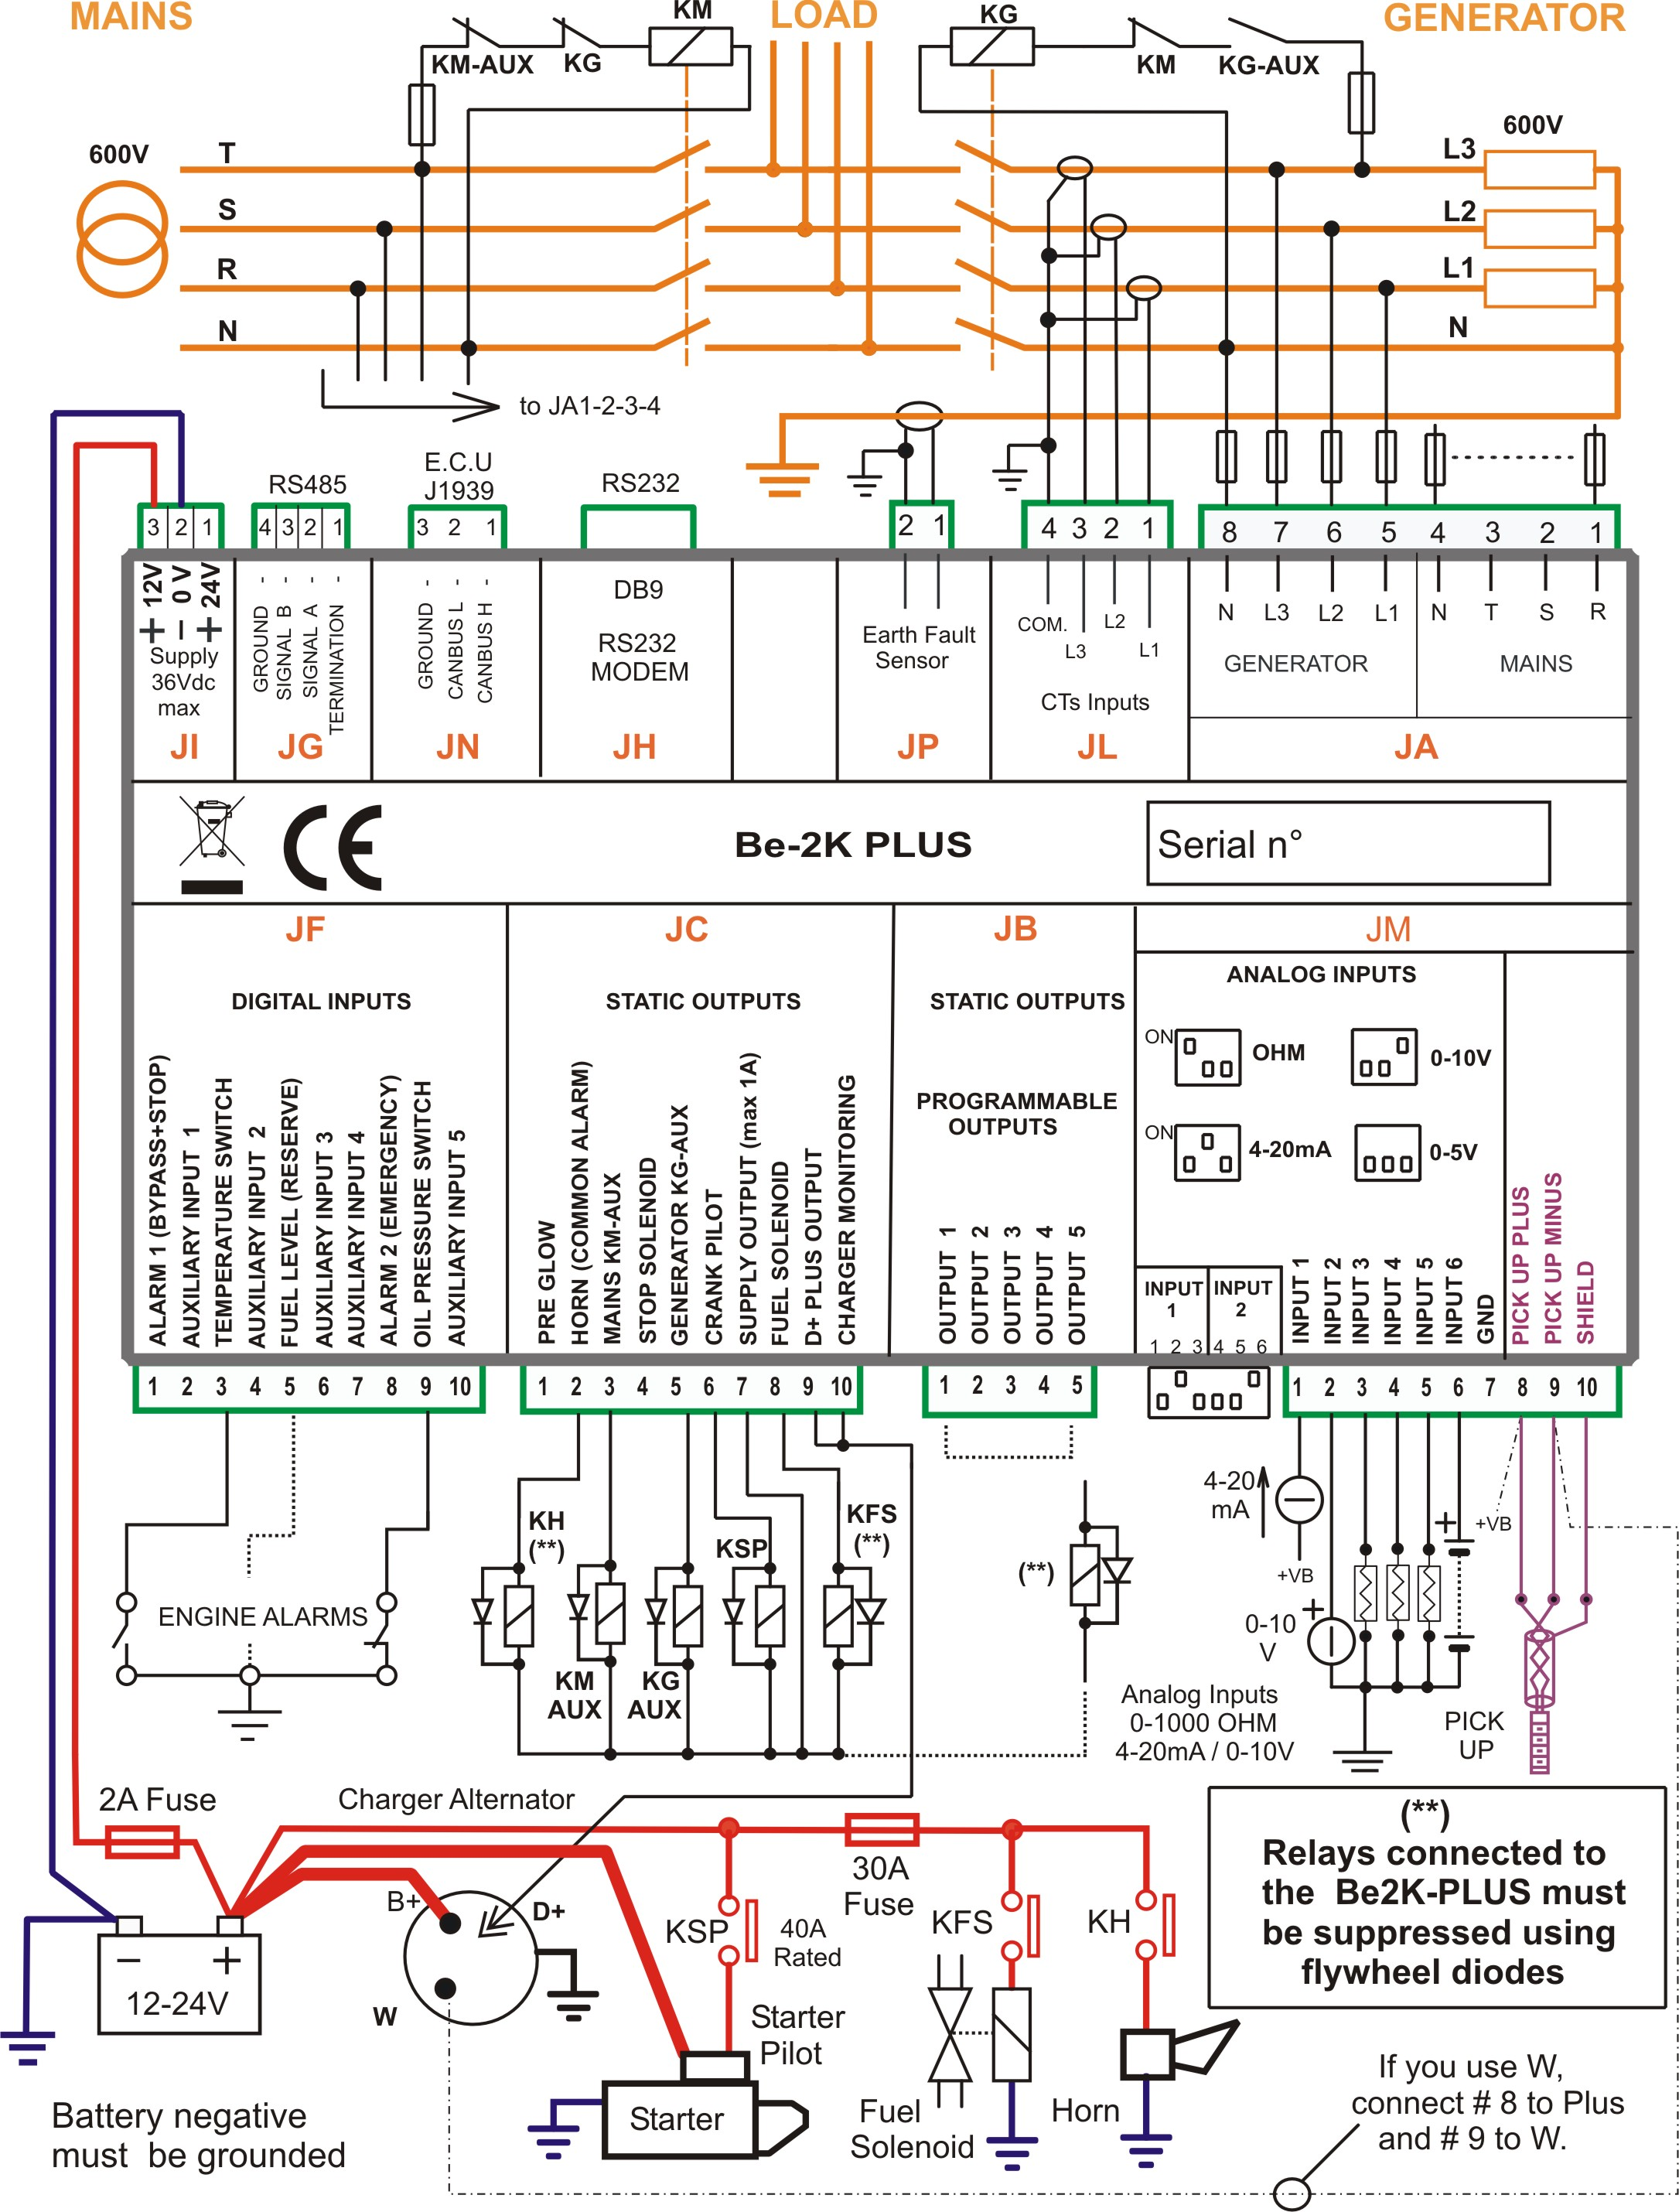 amf panel control wiring genset controller be2k plus automatic mains failure controller recommended wiring diagram